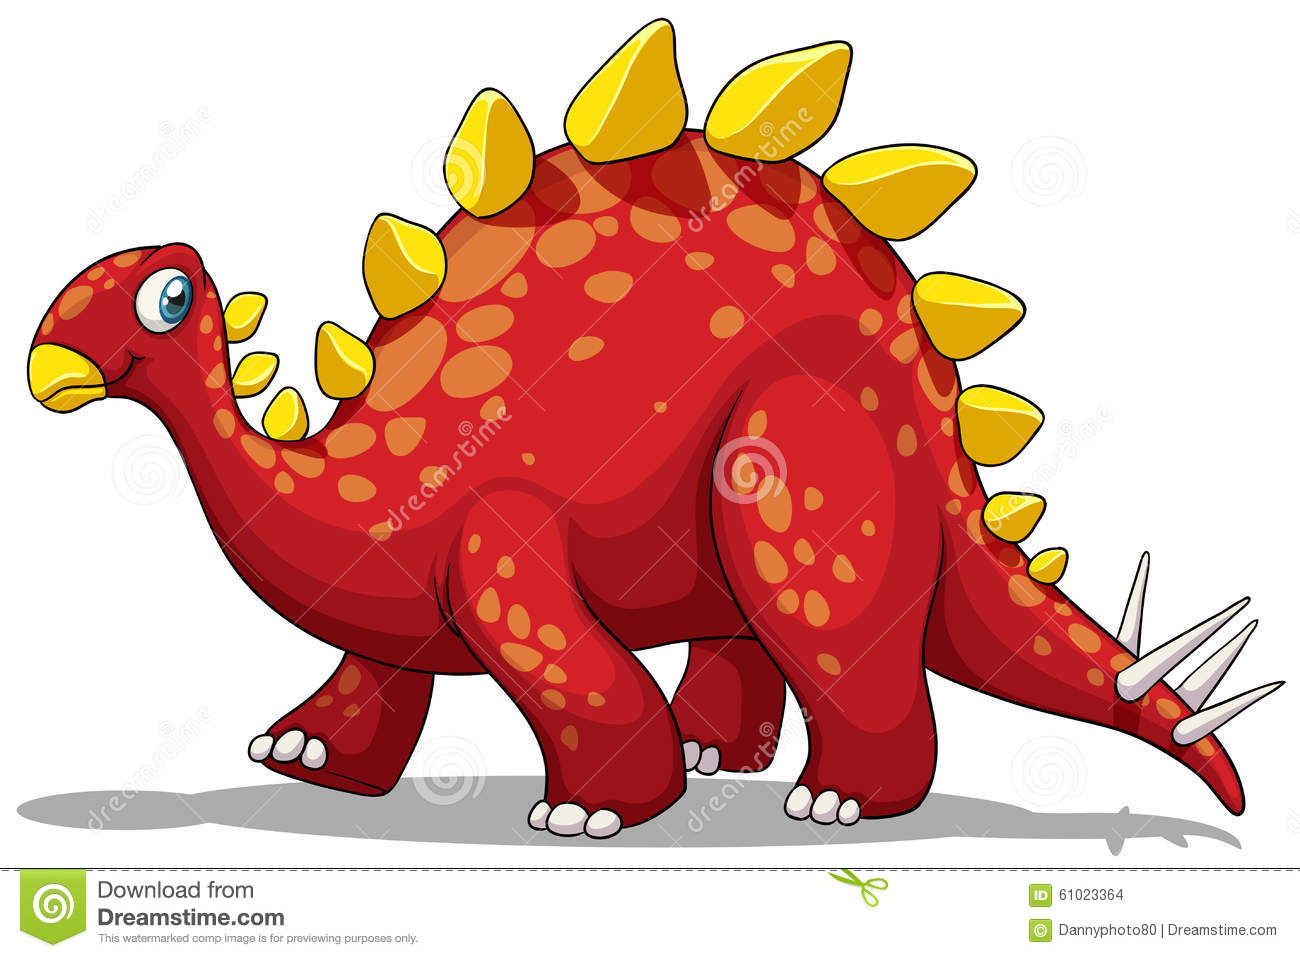 Red Dinosaur With Spikes Tail Stock Illustration - Image: 61023364